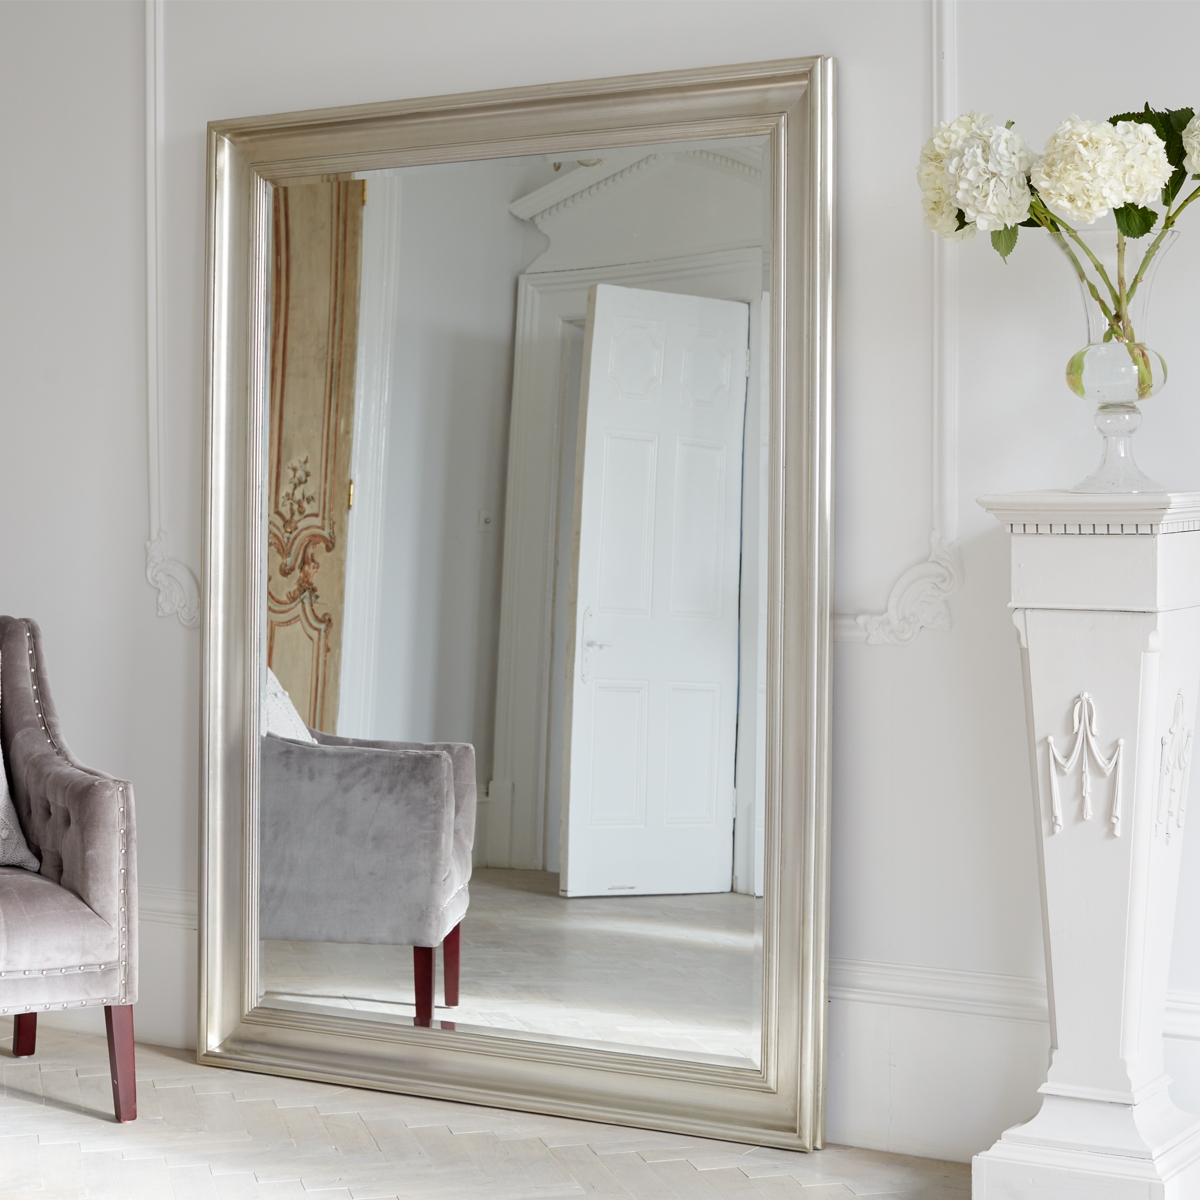 Wall Mirrors Full Length Mirrors Oversized Mirrors Vintage Intended For Big Floor Standing Mirrors (Image 15 of 15)